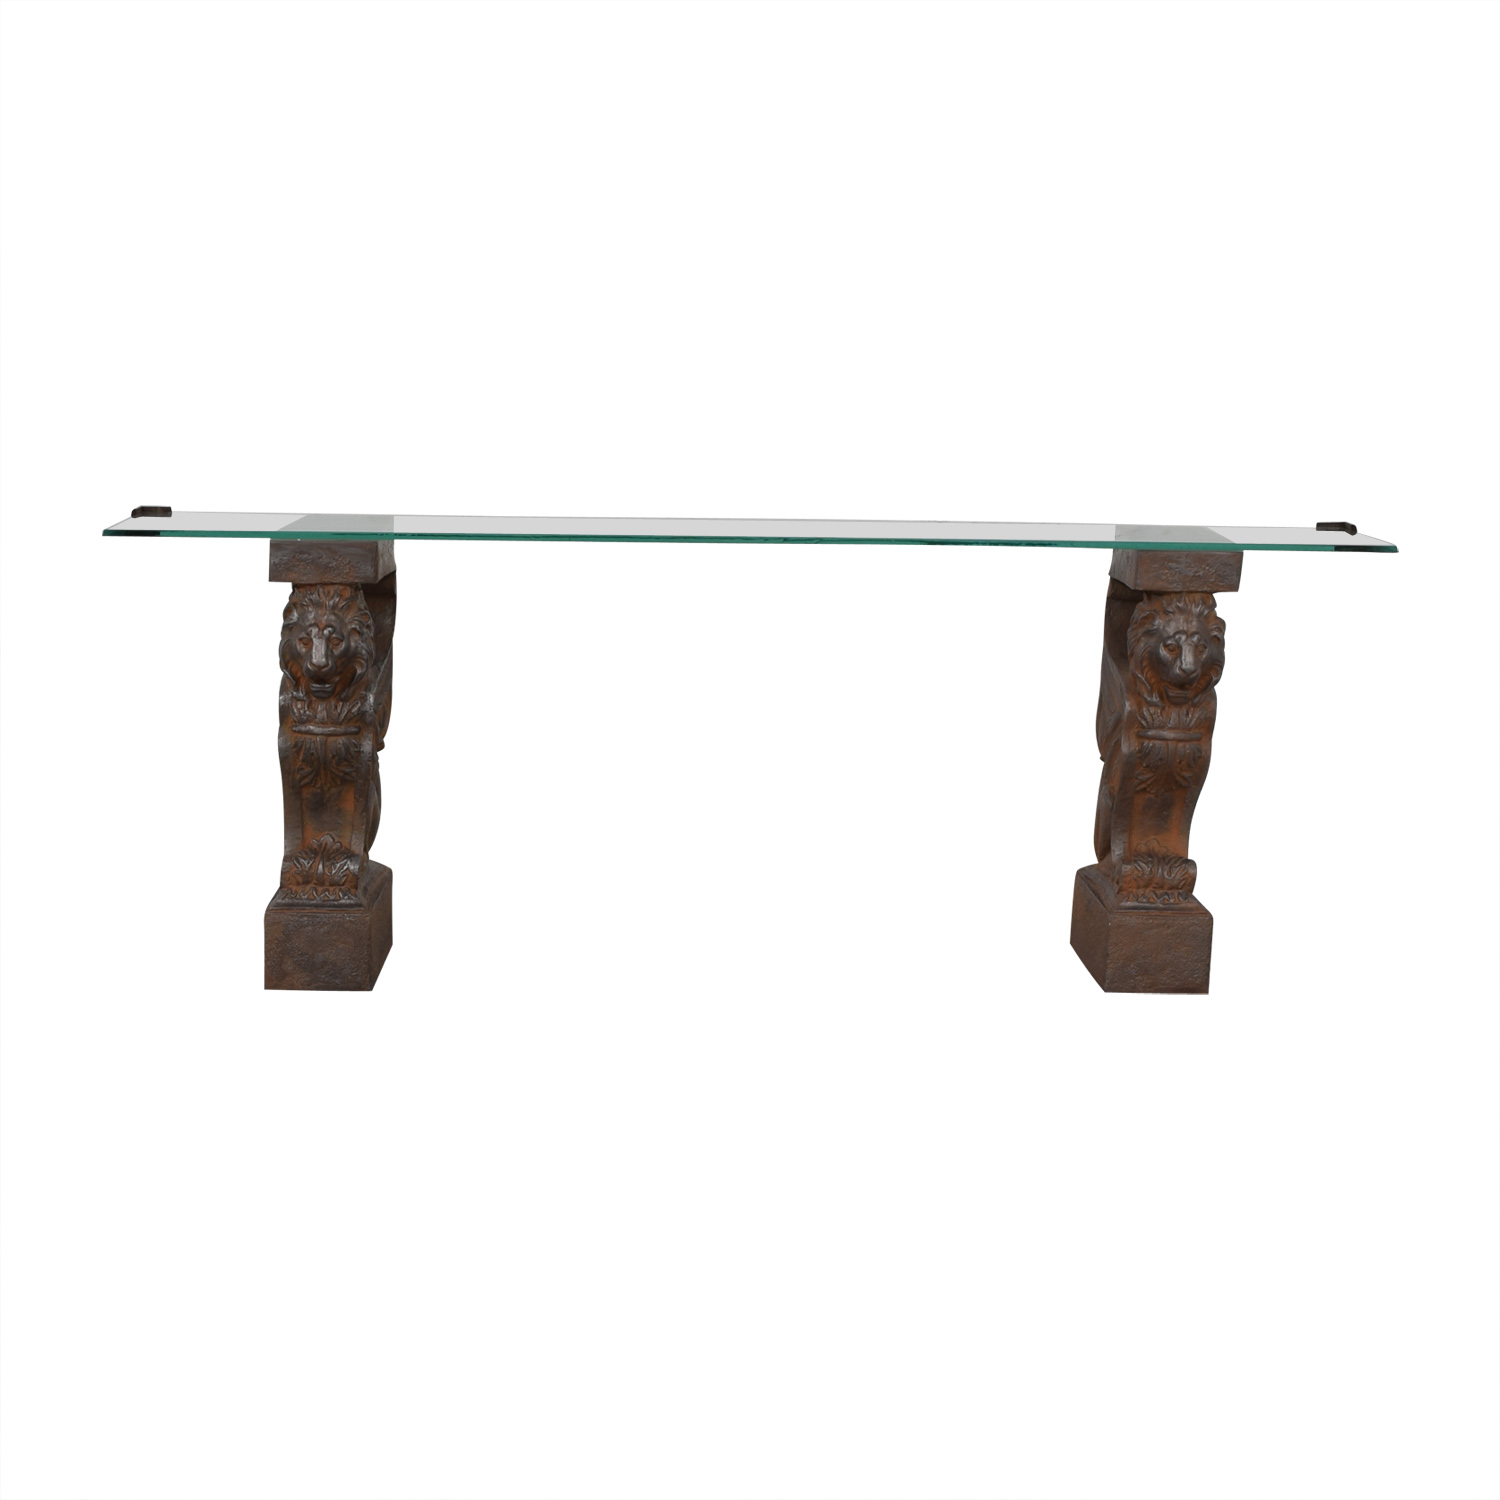 Glass Console Table with Lion Sculpture Pedestal Bases second hand